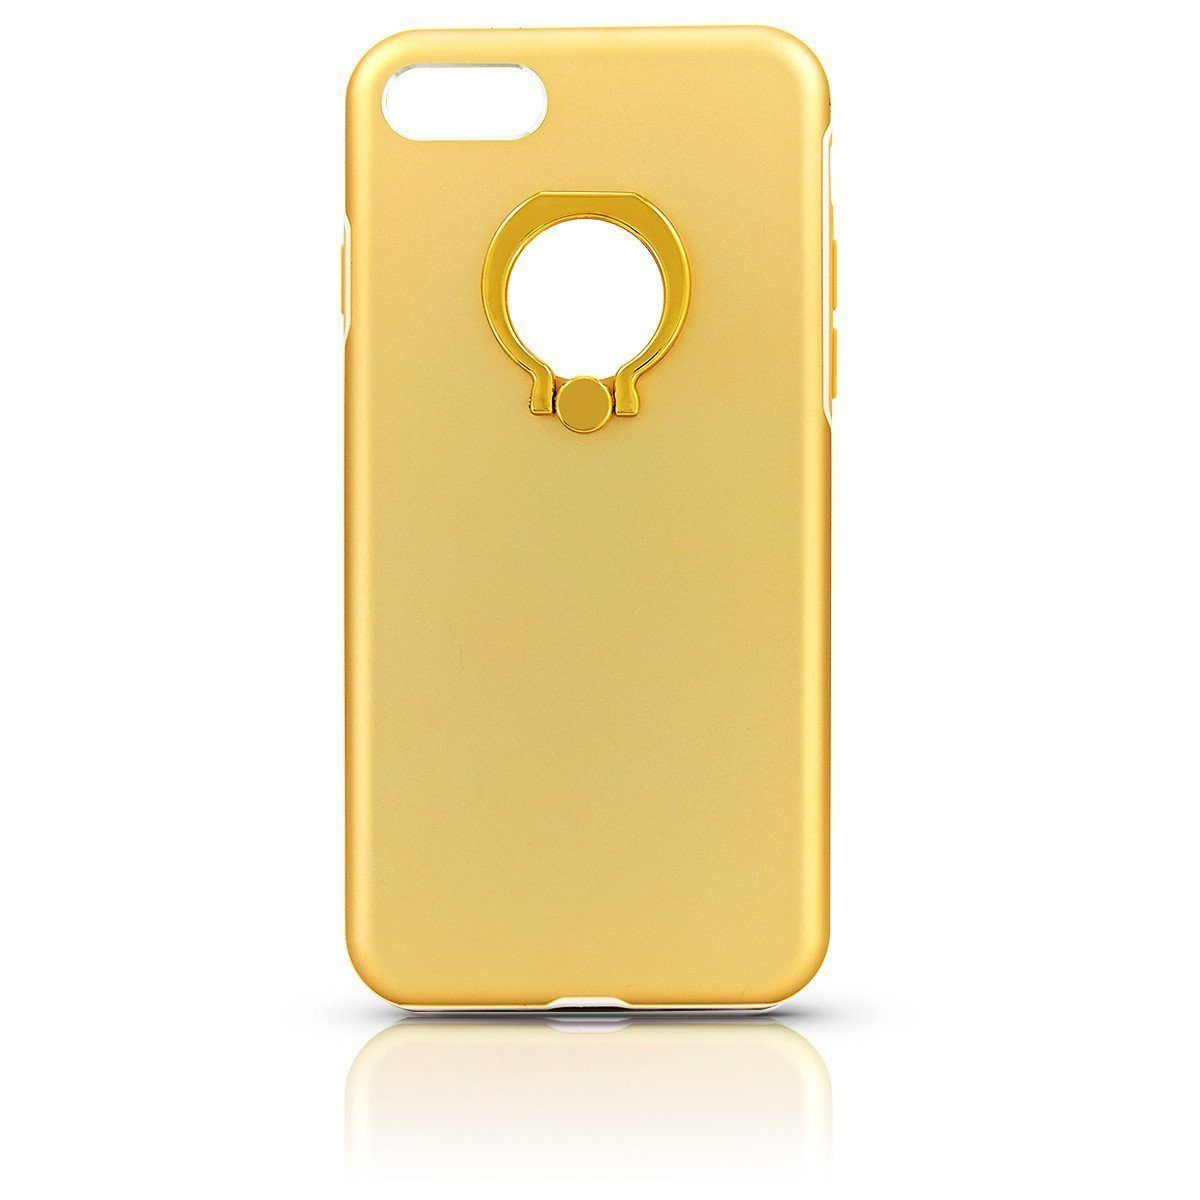 Metal Ring Case for iPhone 7 /8 - Gold